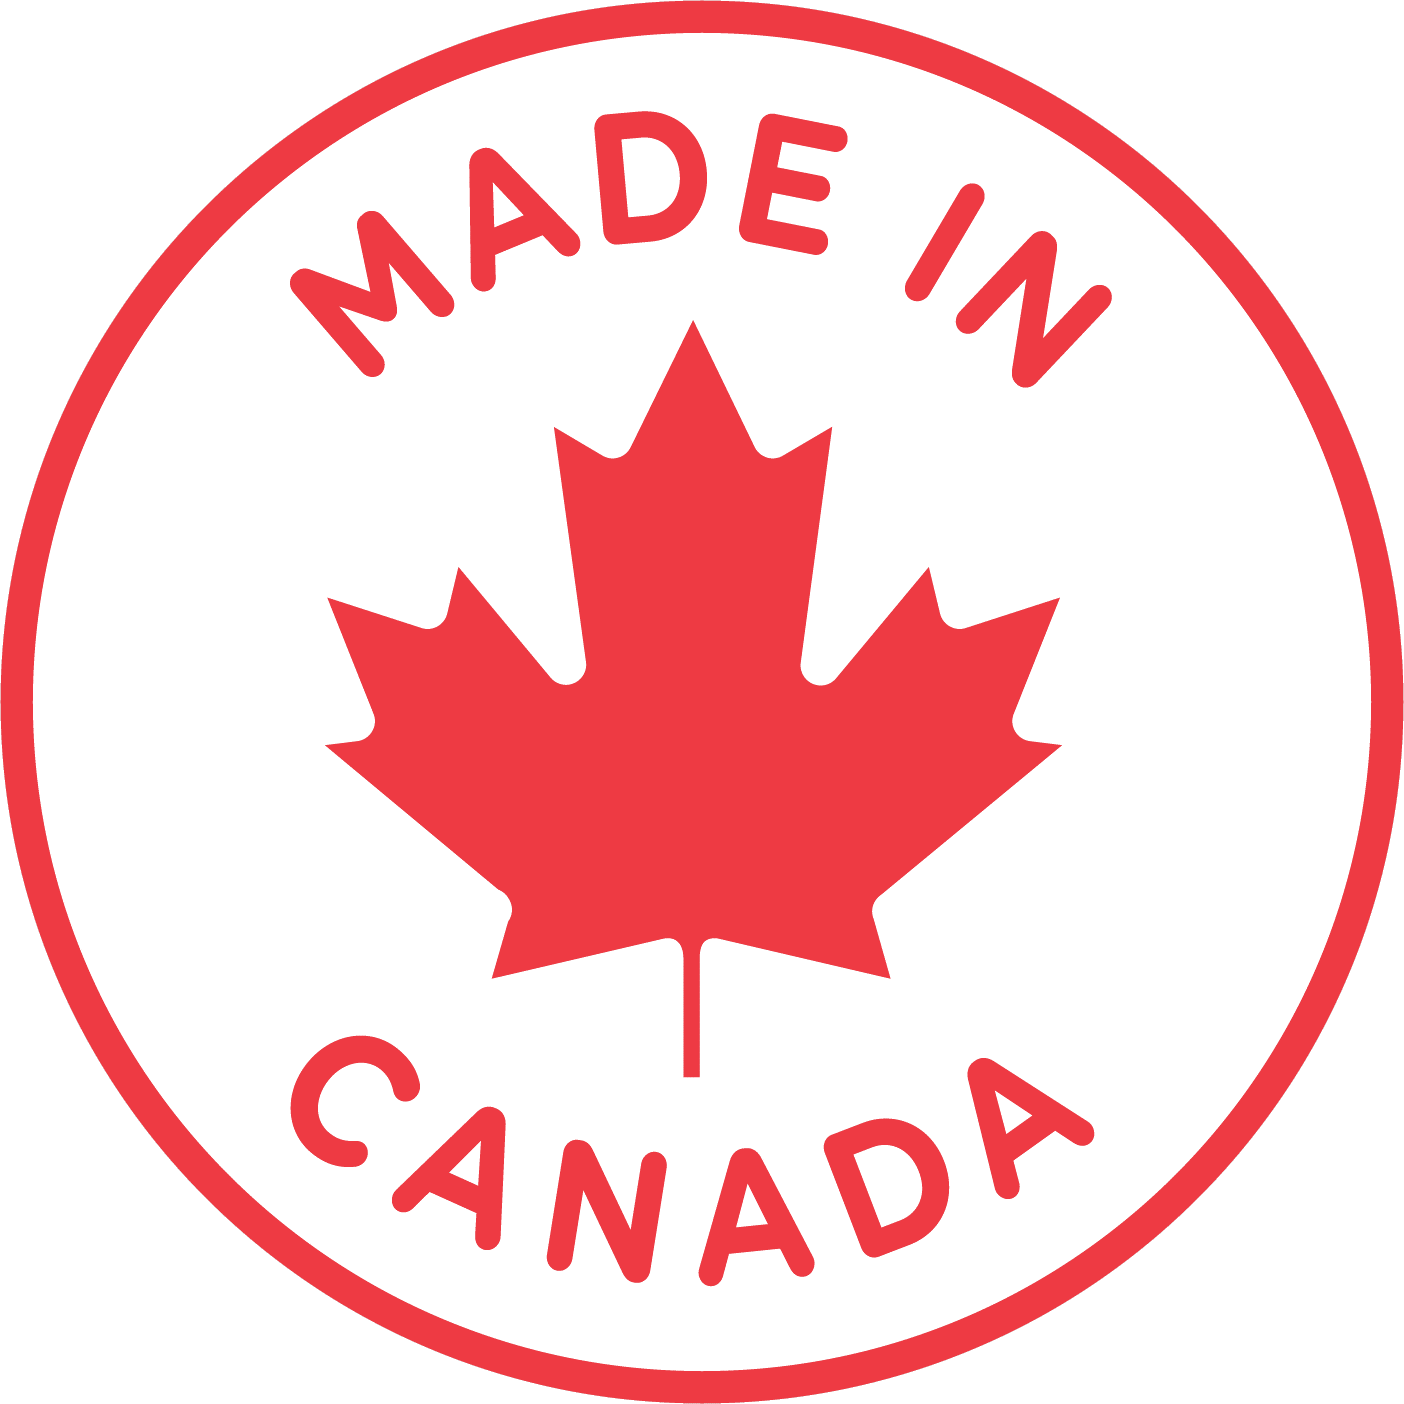 d2o-made-in-canada-2.png